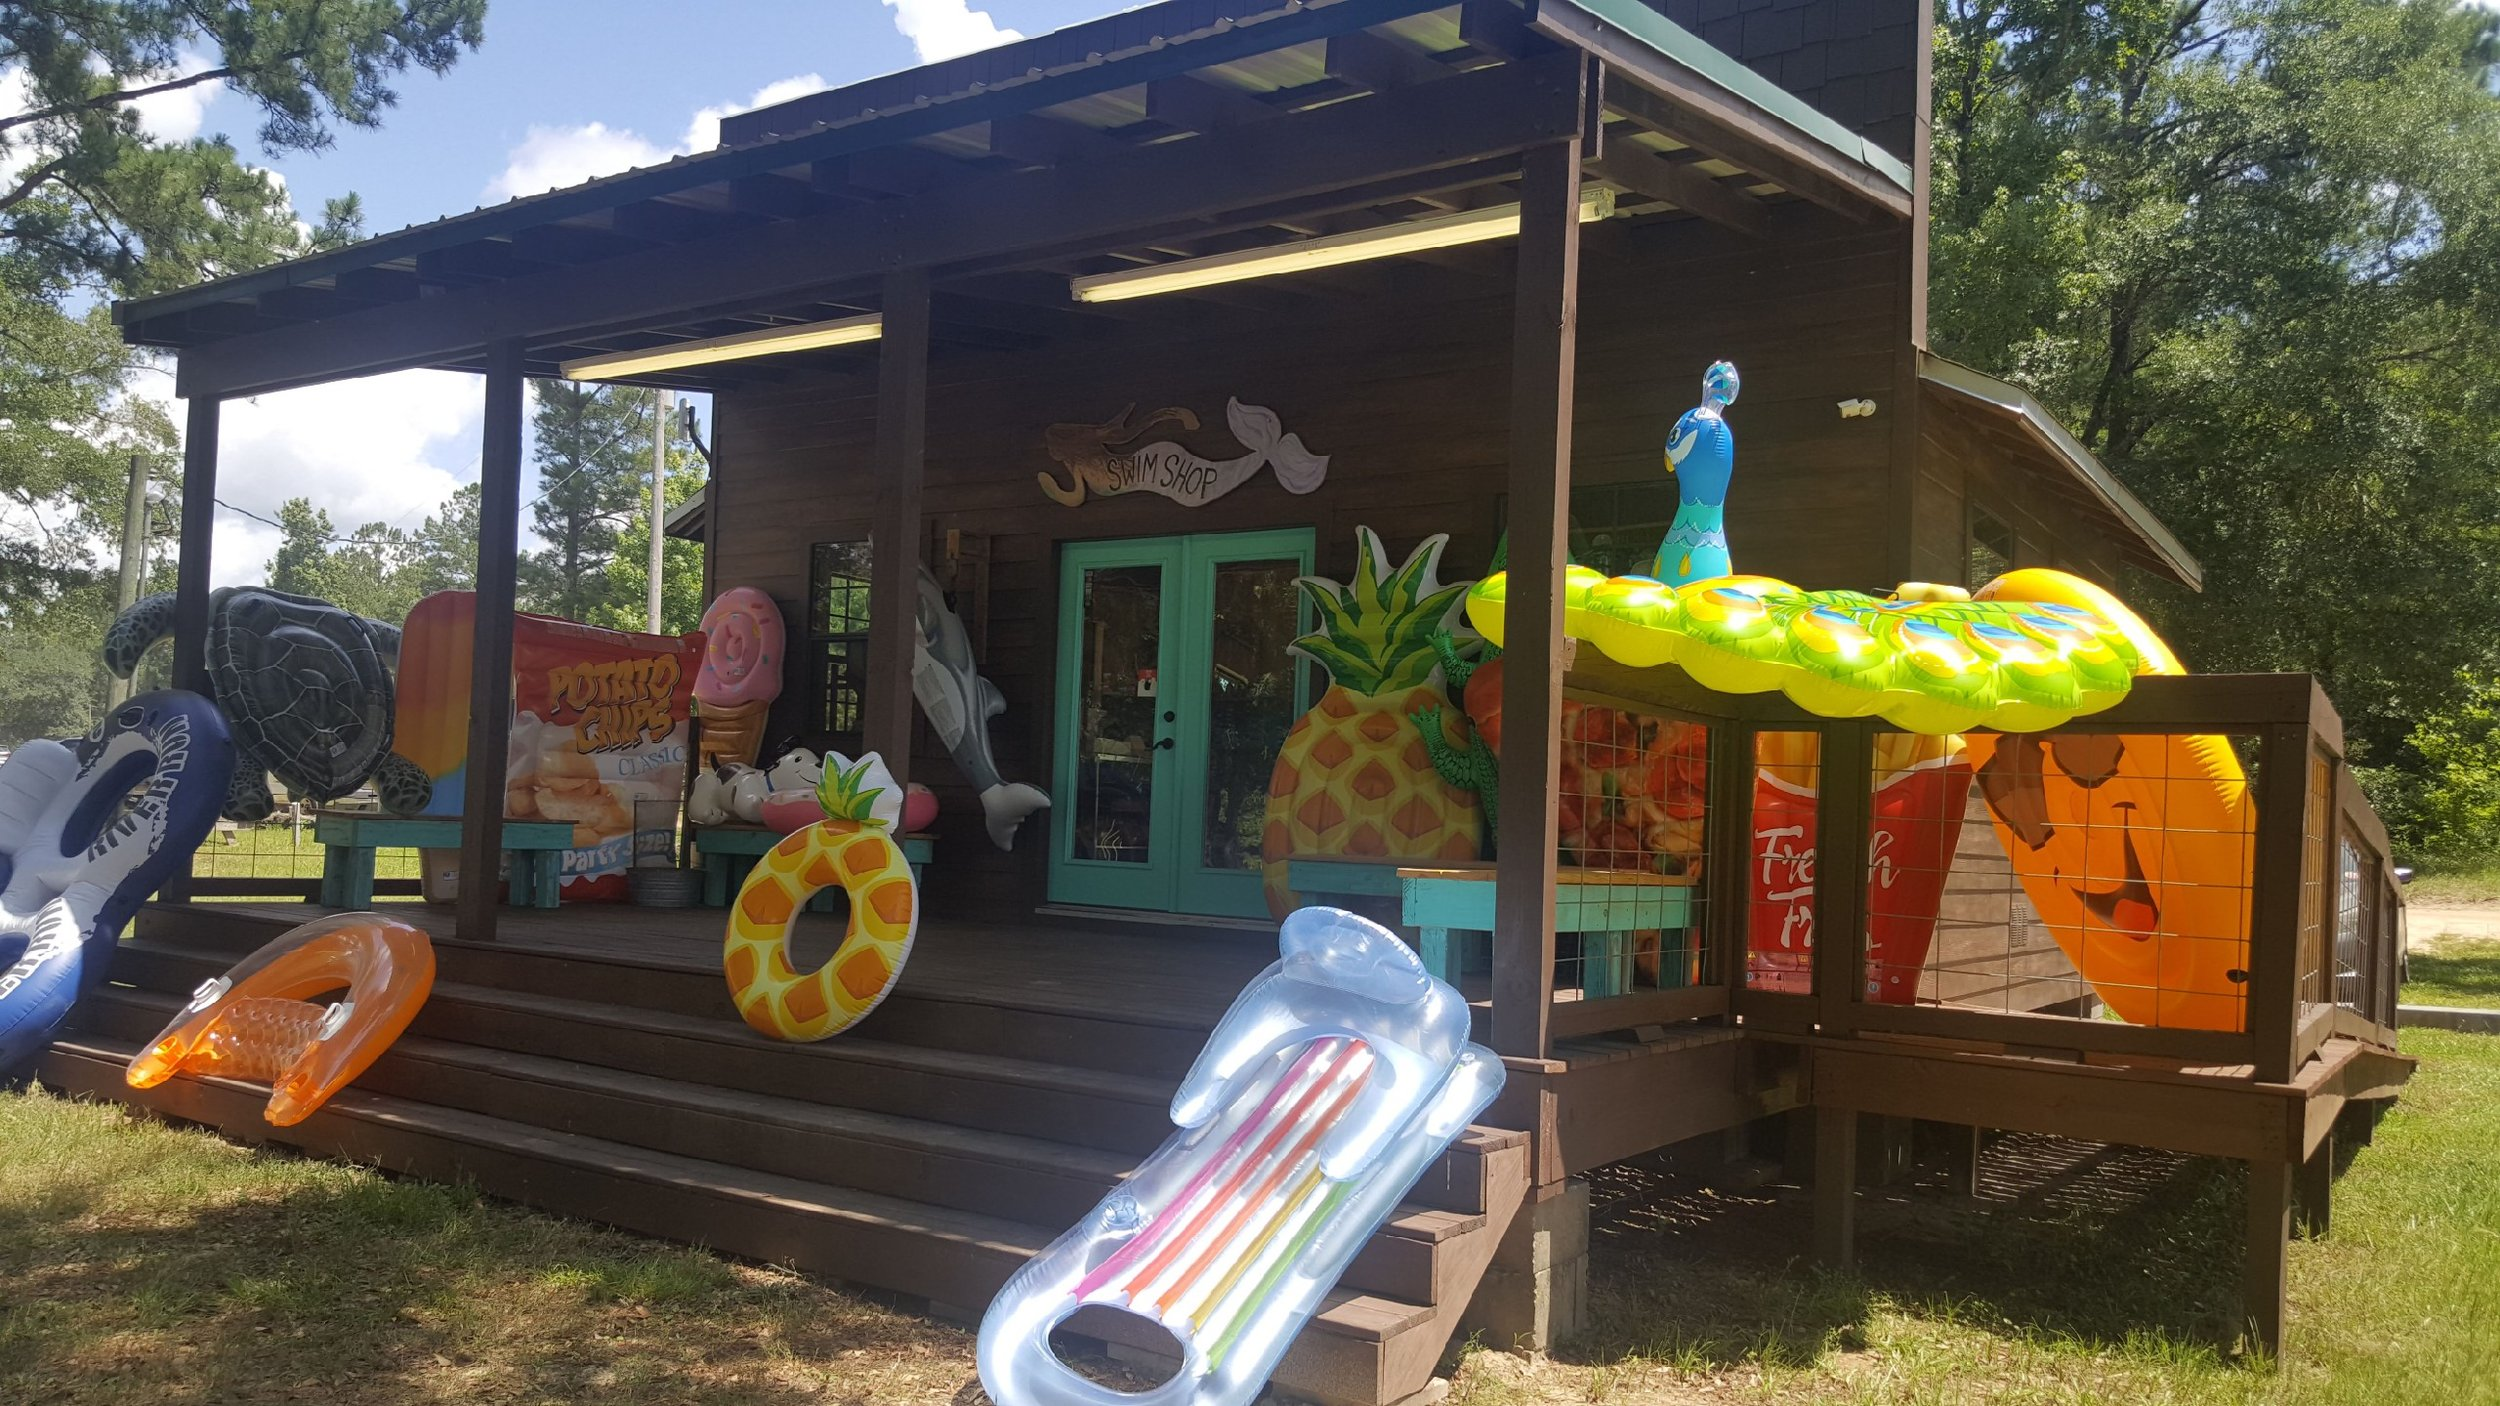 Swim shop - Here you will find anything you could need for your trip to the spring. From ice cream to sun screen youll find it here.*This is also a fill station for floats.